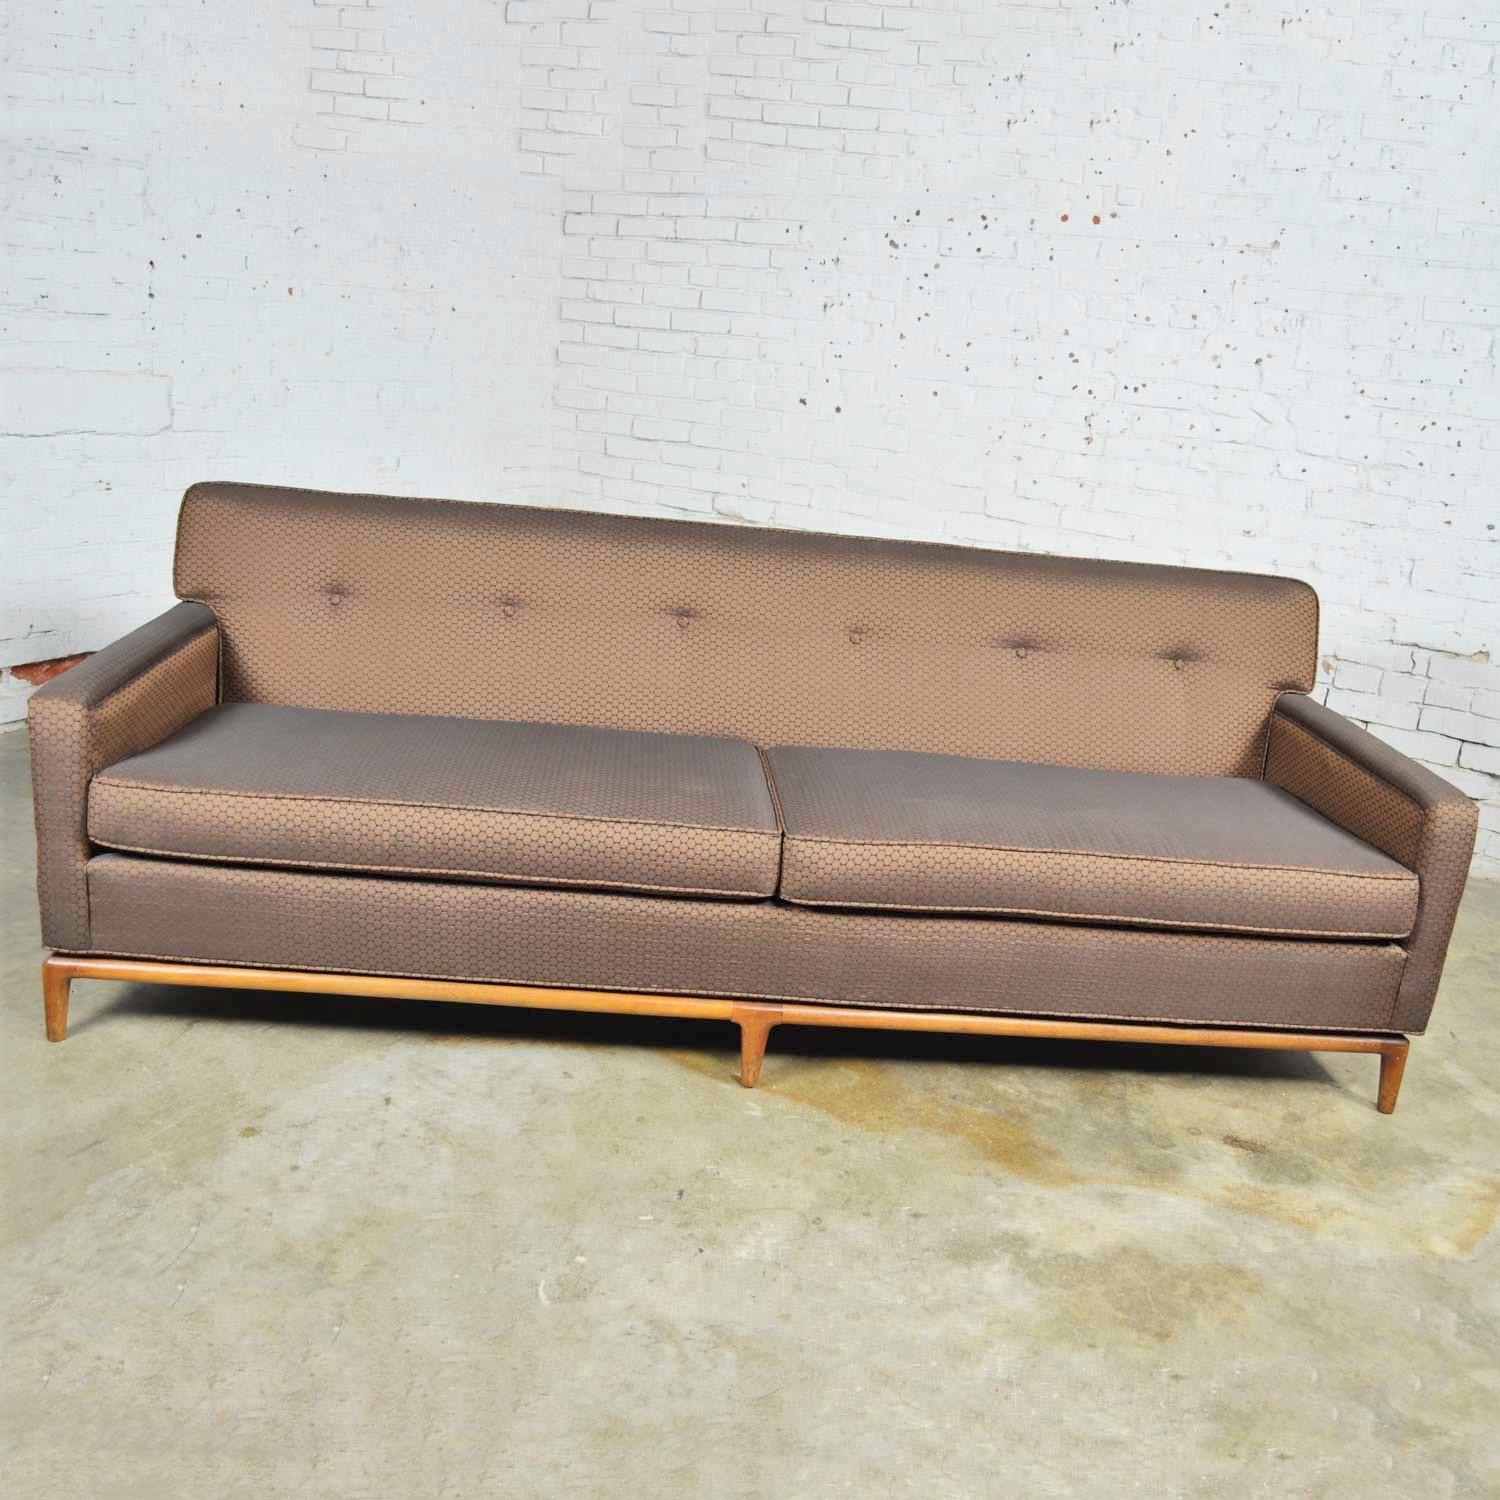 Surprising Mid Century Modern Tufted Tight Back Tuxedo Sofa On Walnut Gmtry Best Dining Table And Chair Ideas Images Gmtryco